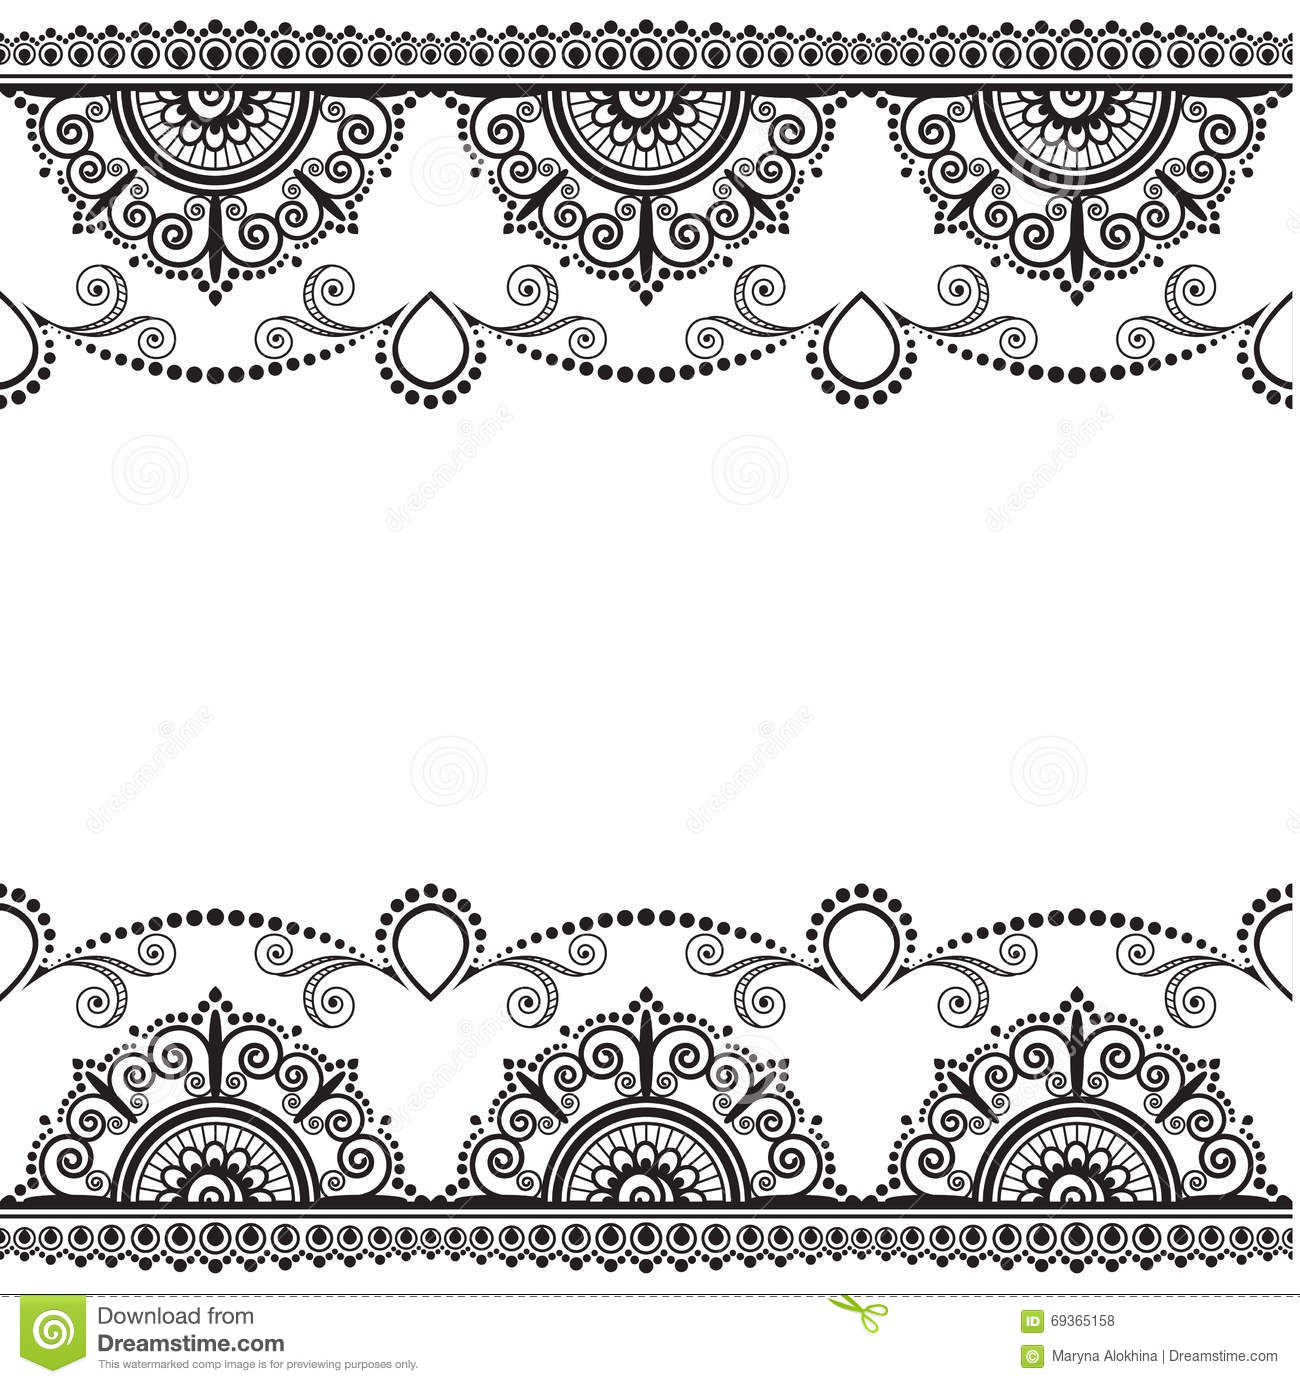 Henna Design Line Art : Indian mehndi henna line lace element with flowers